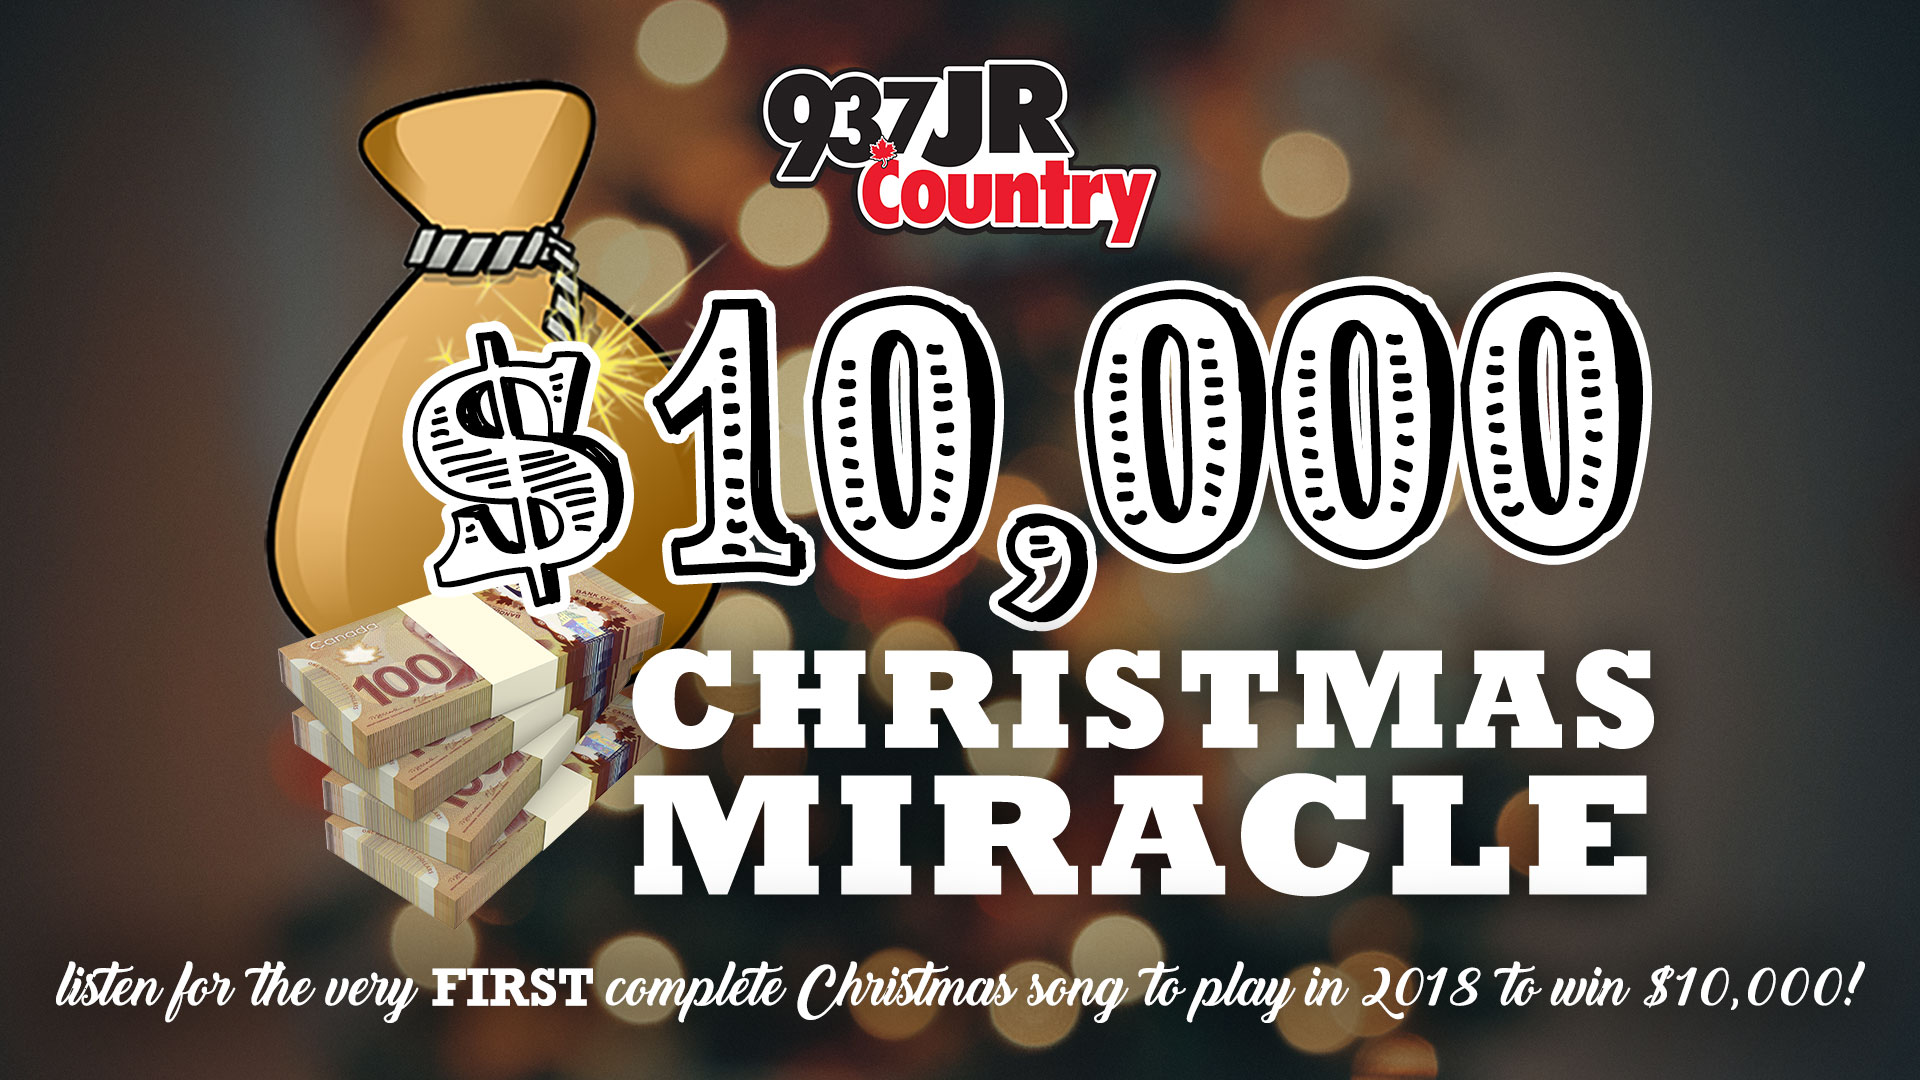 Feature: https://www.jrcountry.ca/10000-christmas-miracle/